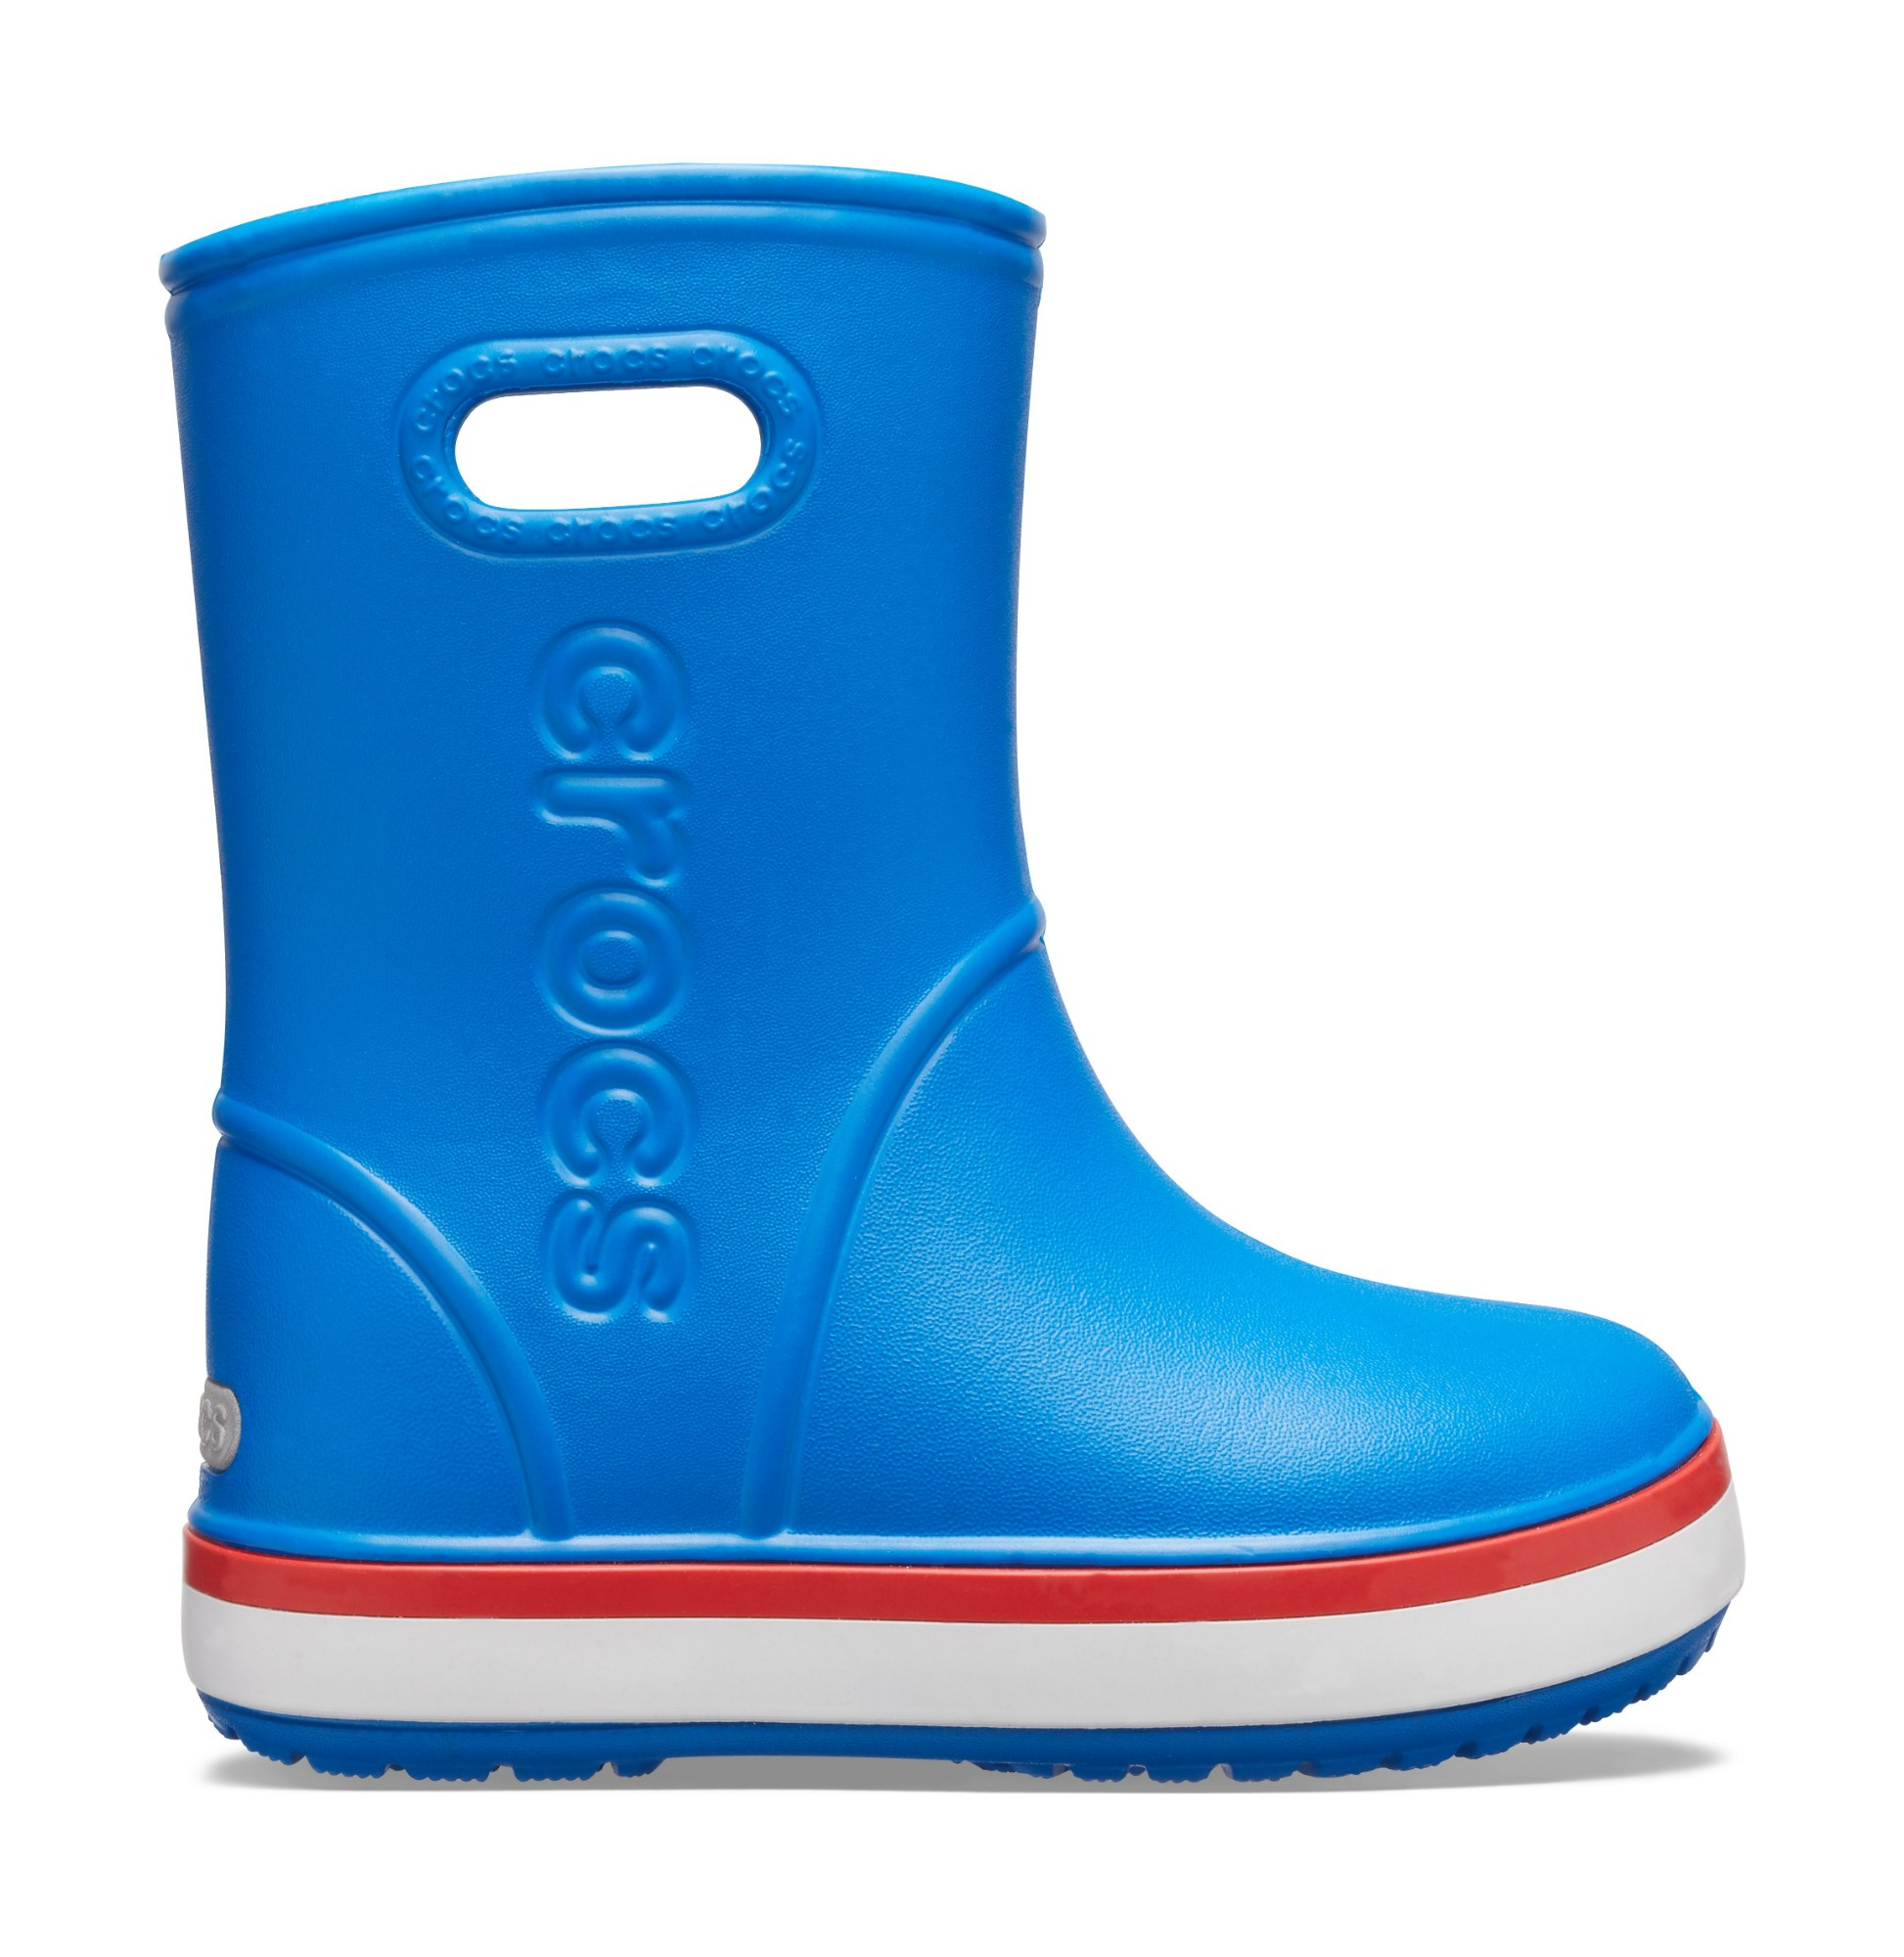 Crocs™ Crocband Rain Boot Kid's Bright Cobalt/Flame 32